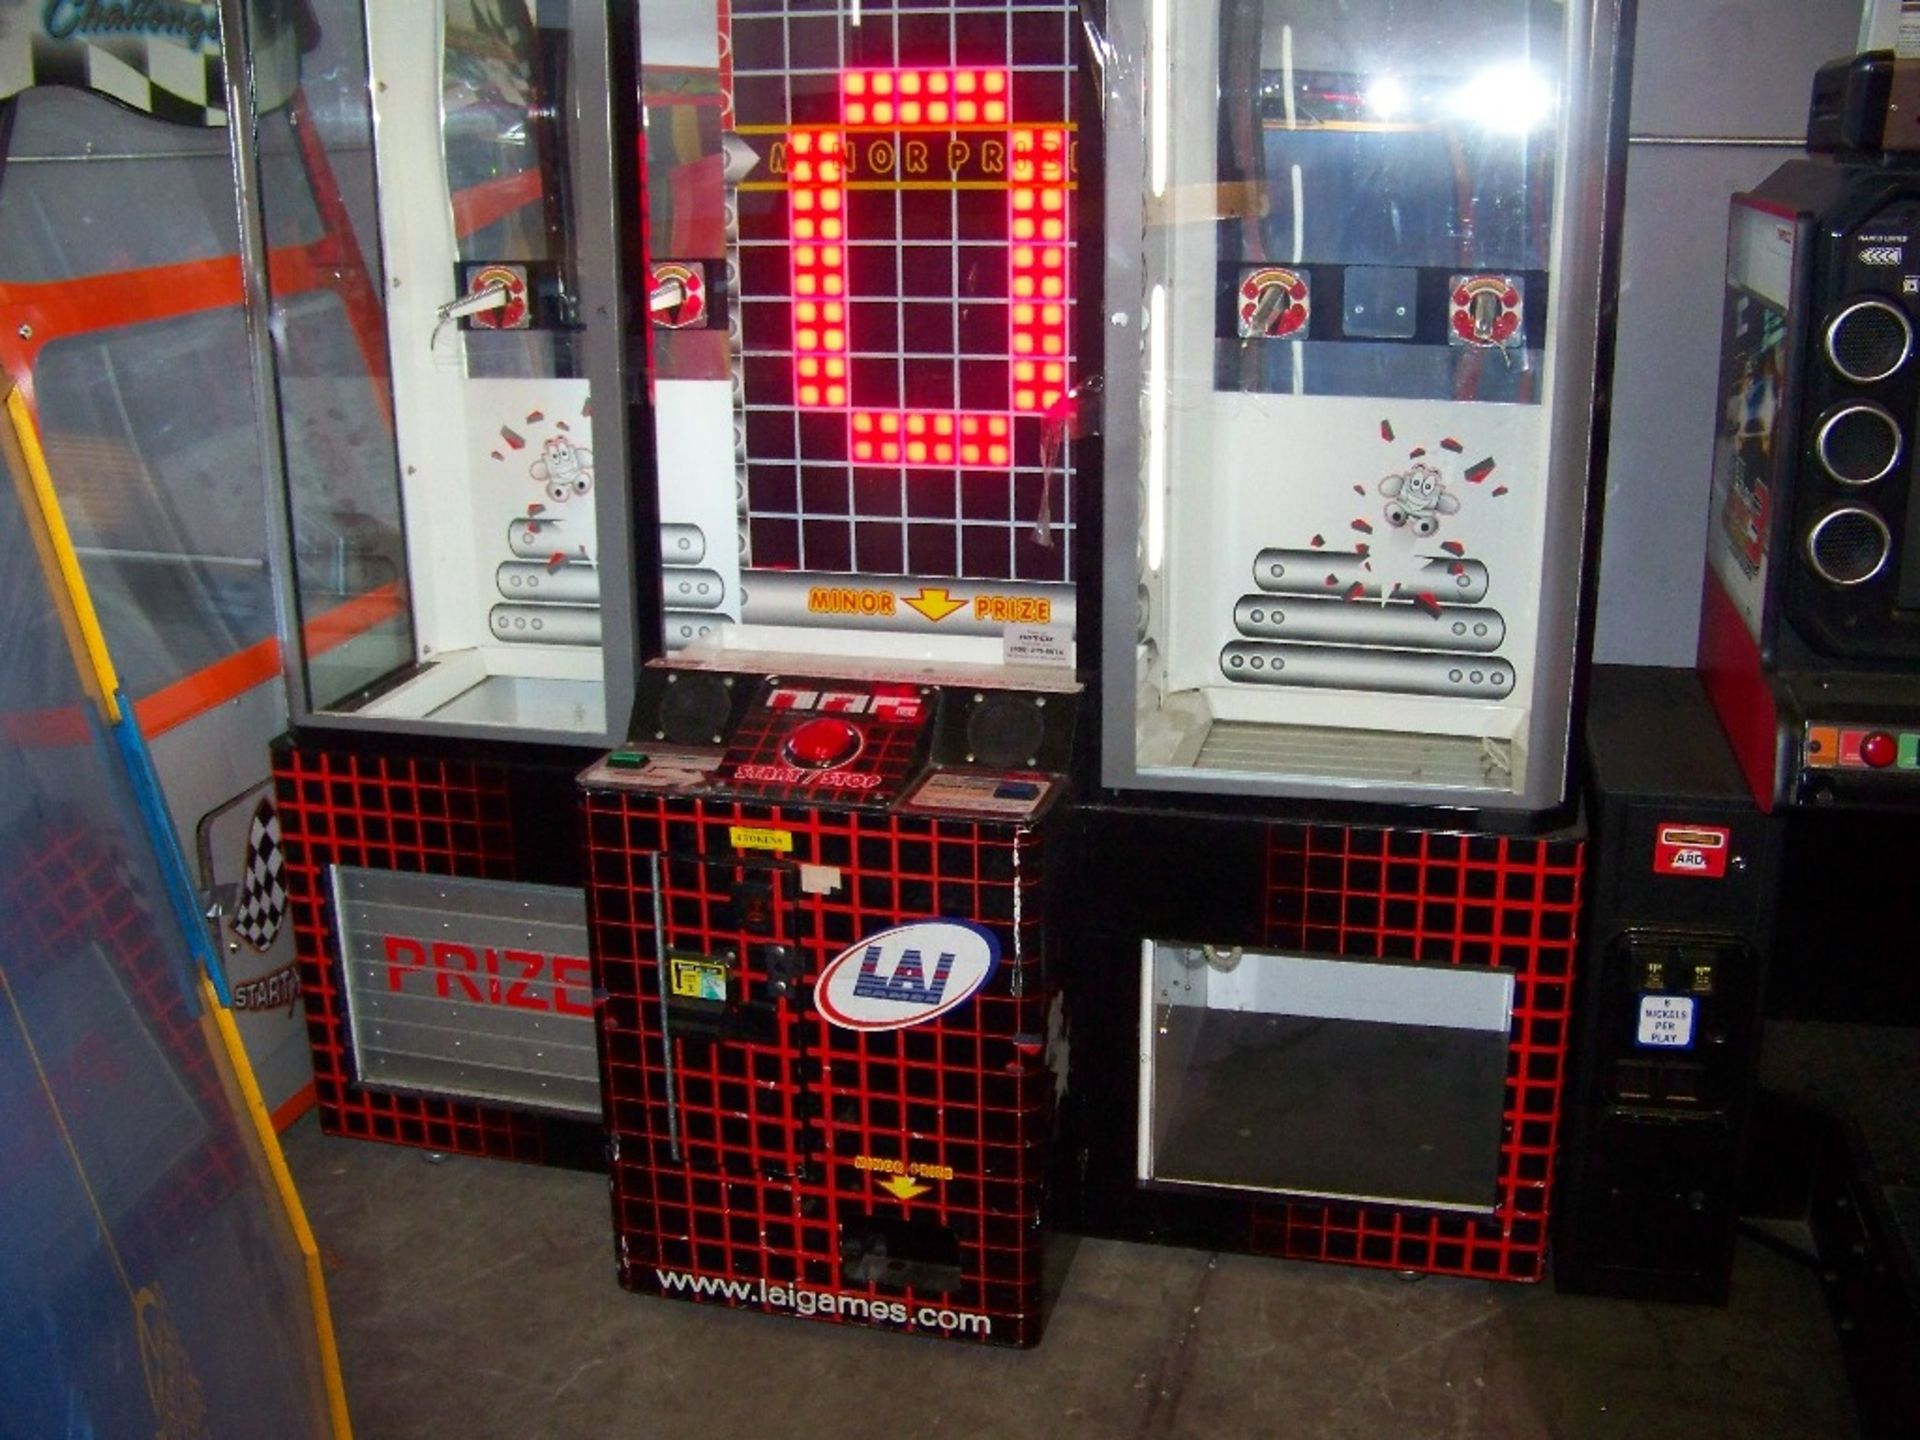 STACKER GIANT PRIZE REDEMPTION GAME LAI GAMES - Image 2 of 4